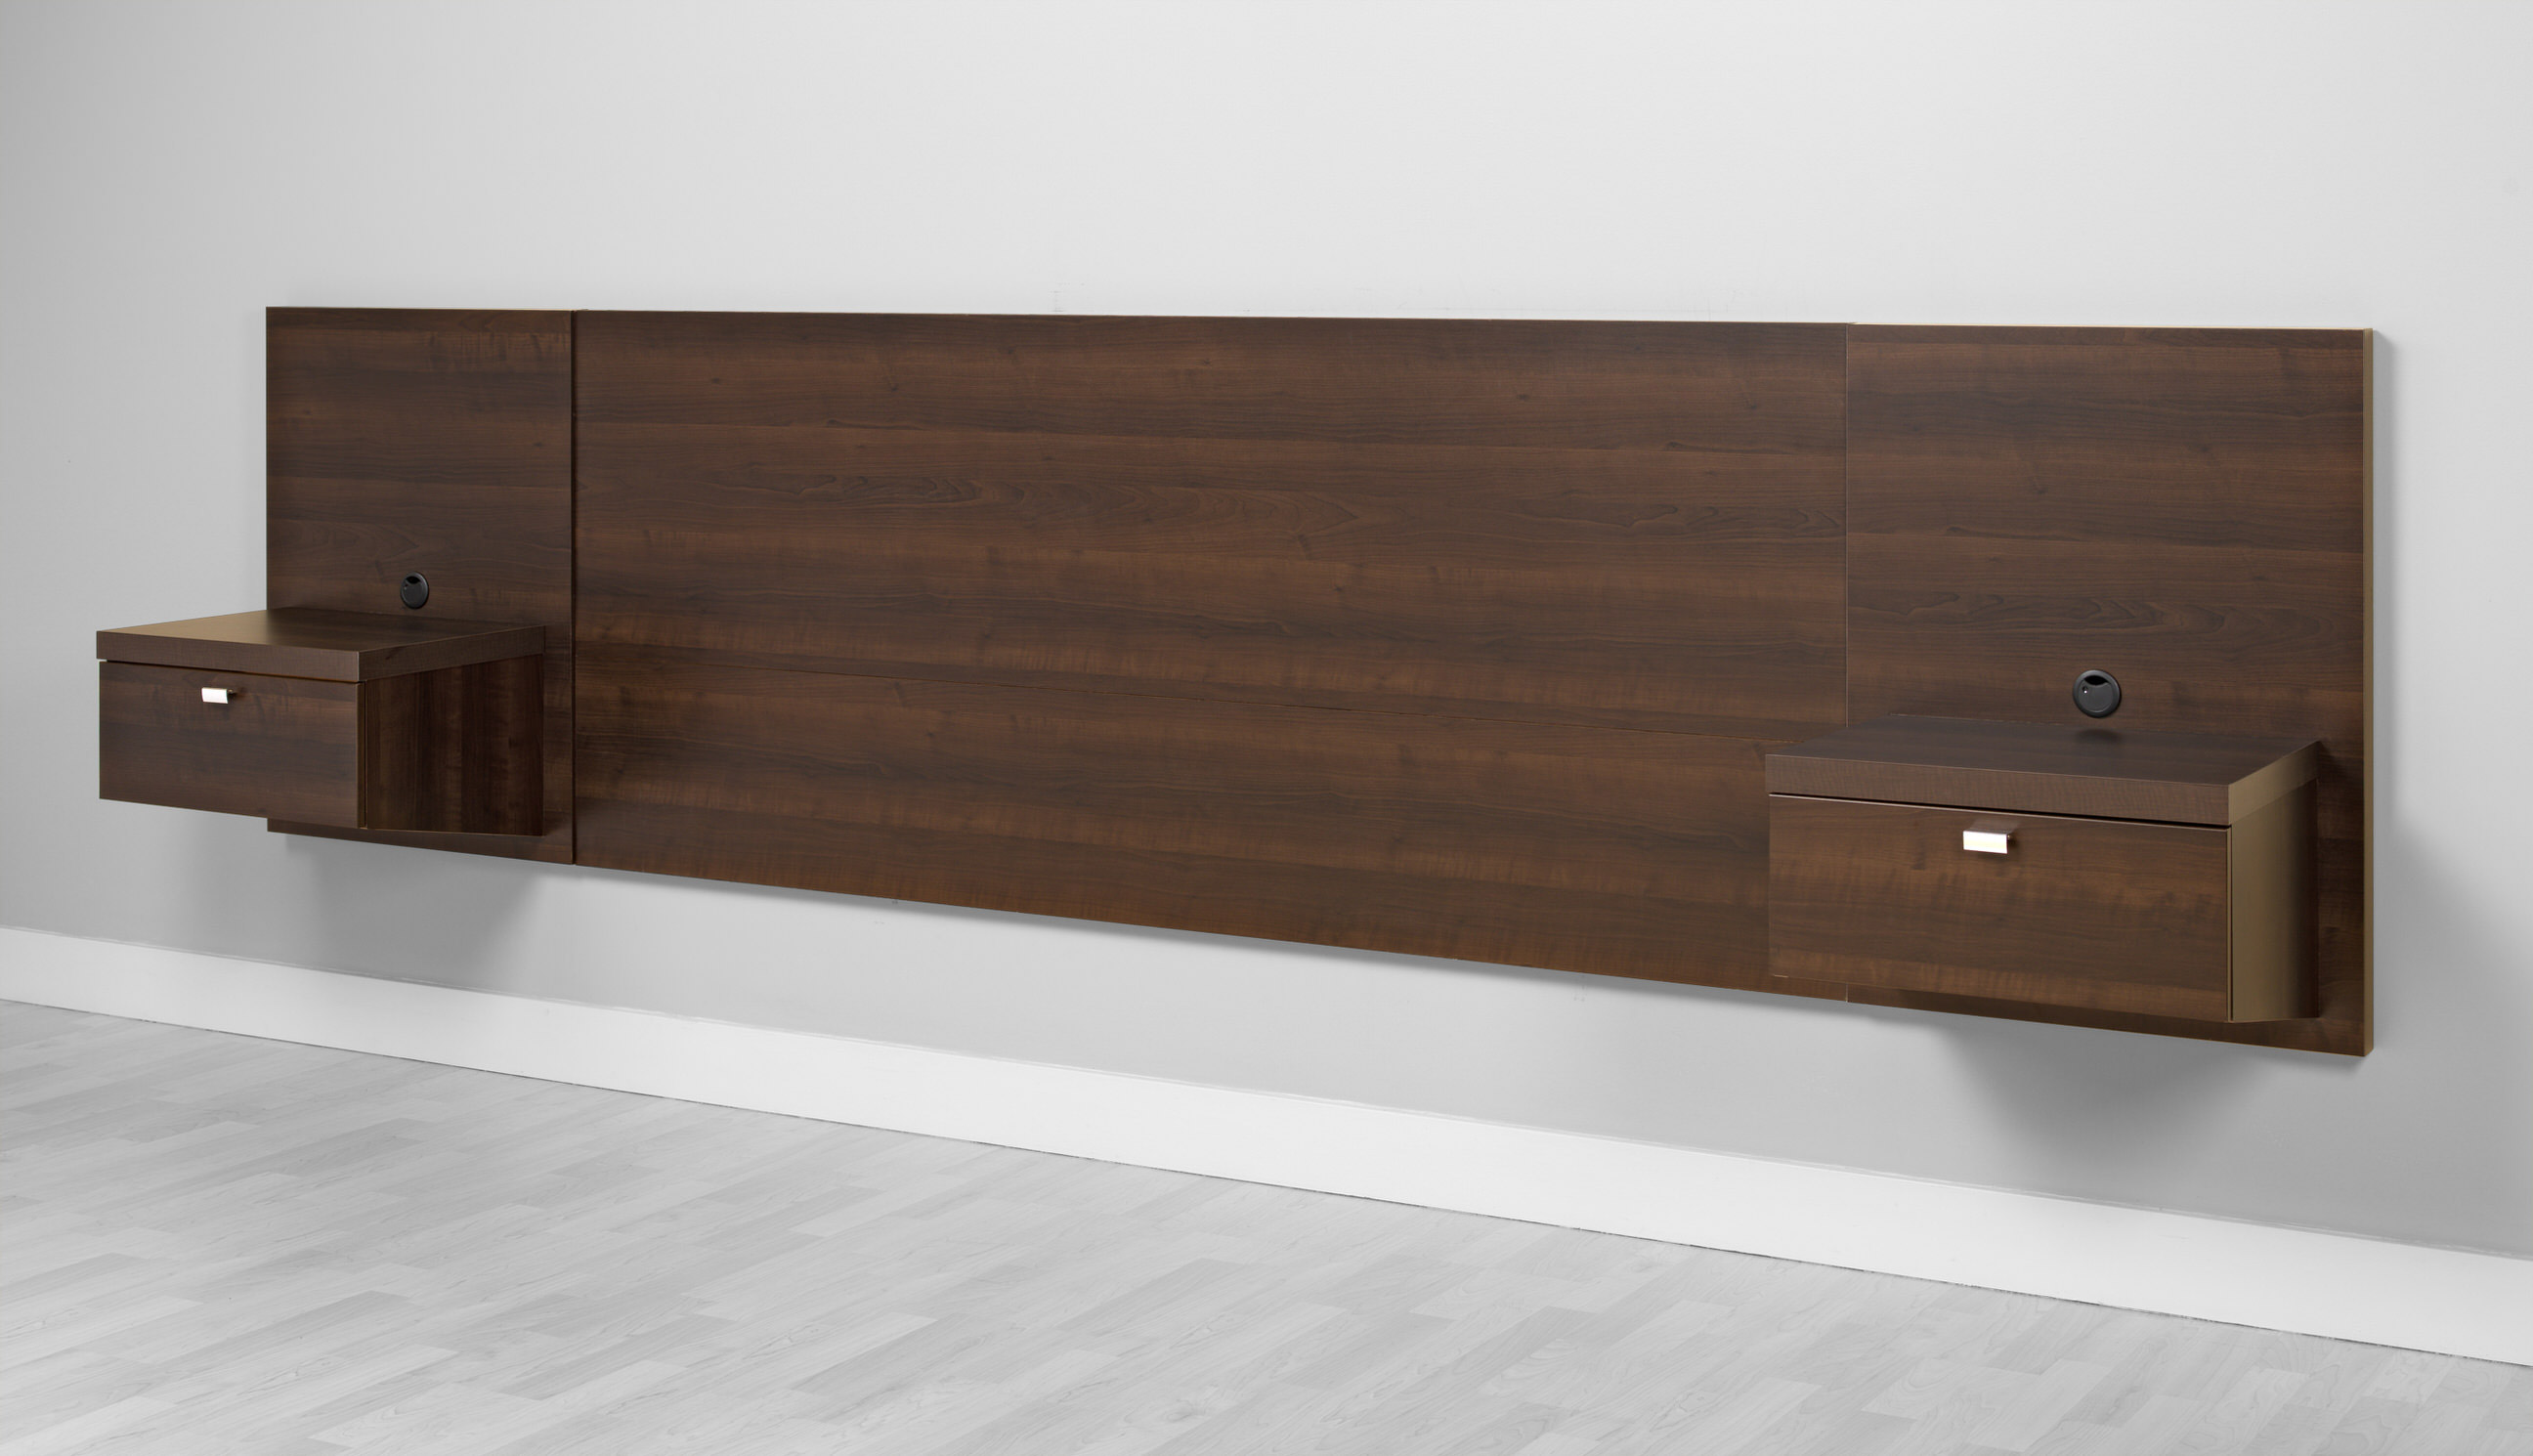 Prepac espresso series 9 wall mounted headboard system with 2 - Series 9 Designer Floating King Headboard With Nightstands By Prepac Espresso